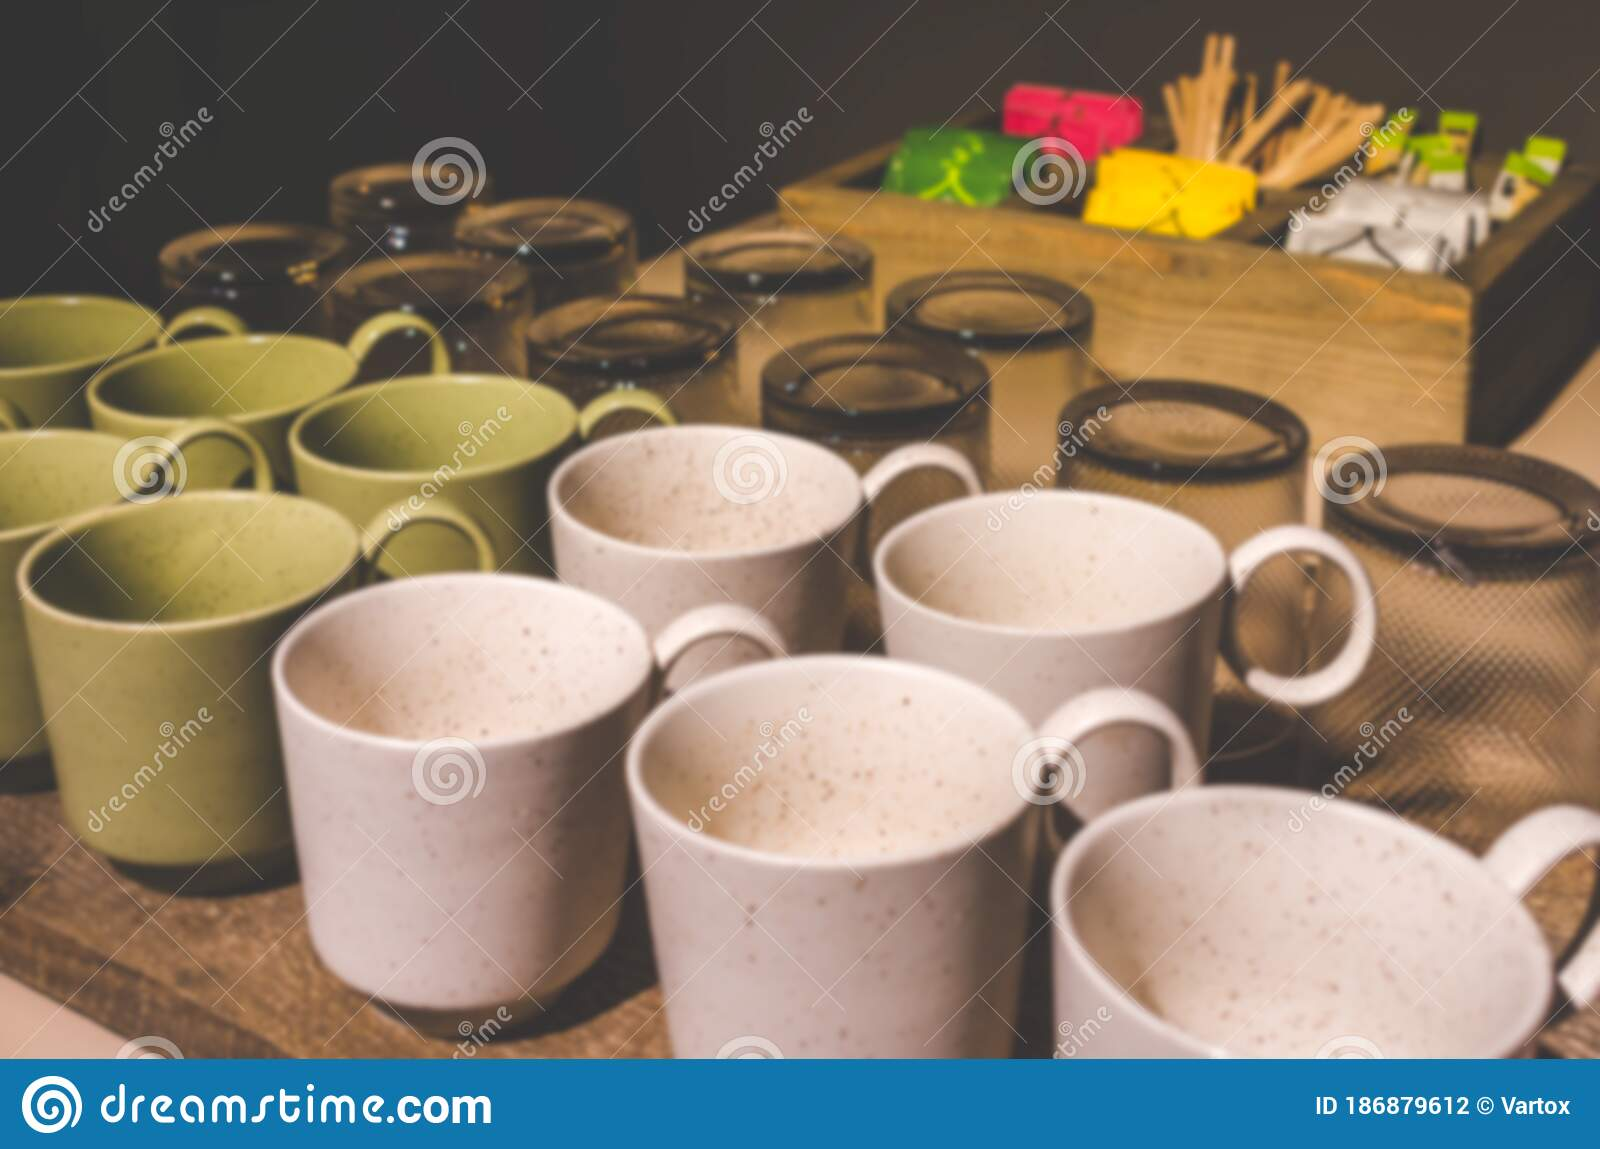 Abstract Defocused And Blurred Tea Cups And Glass For Background